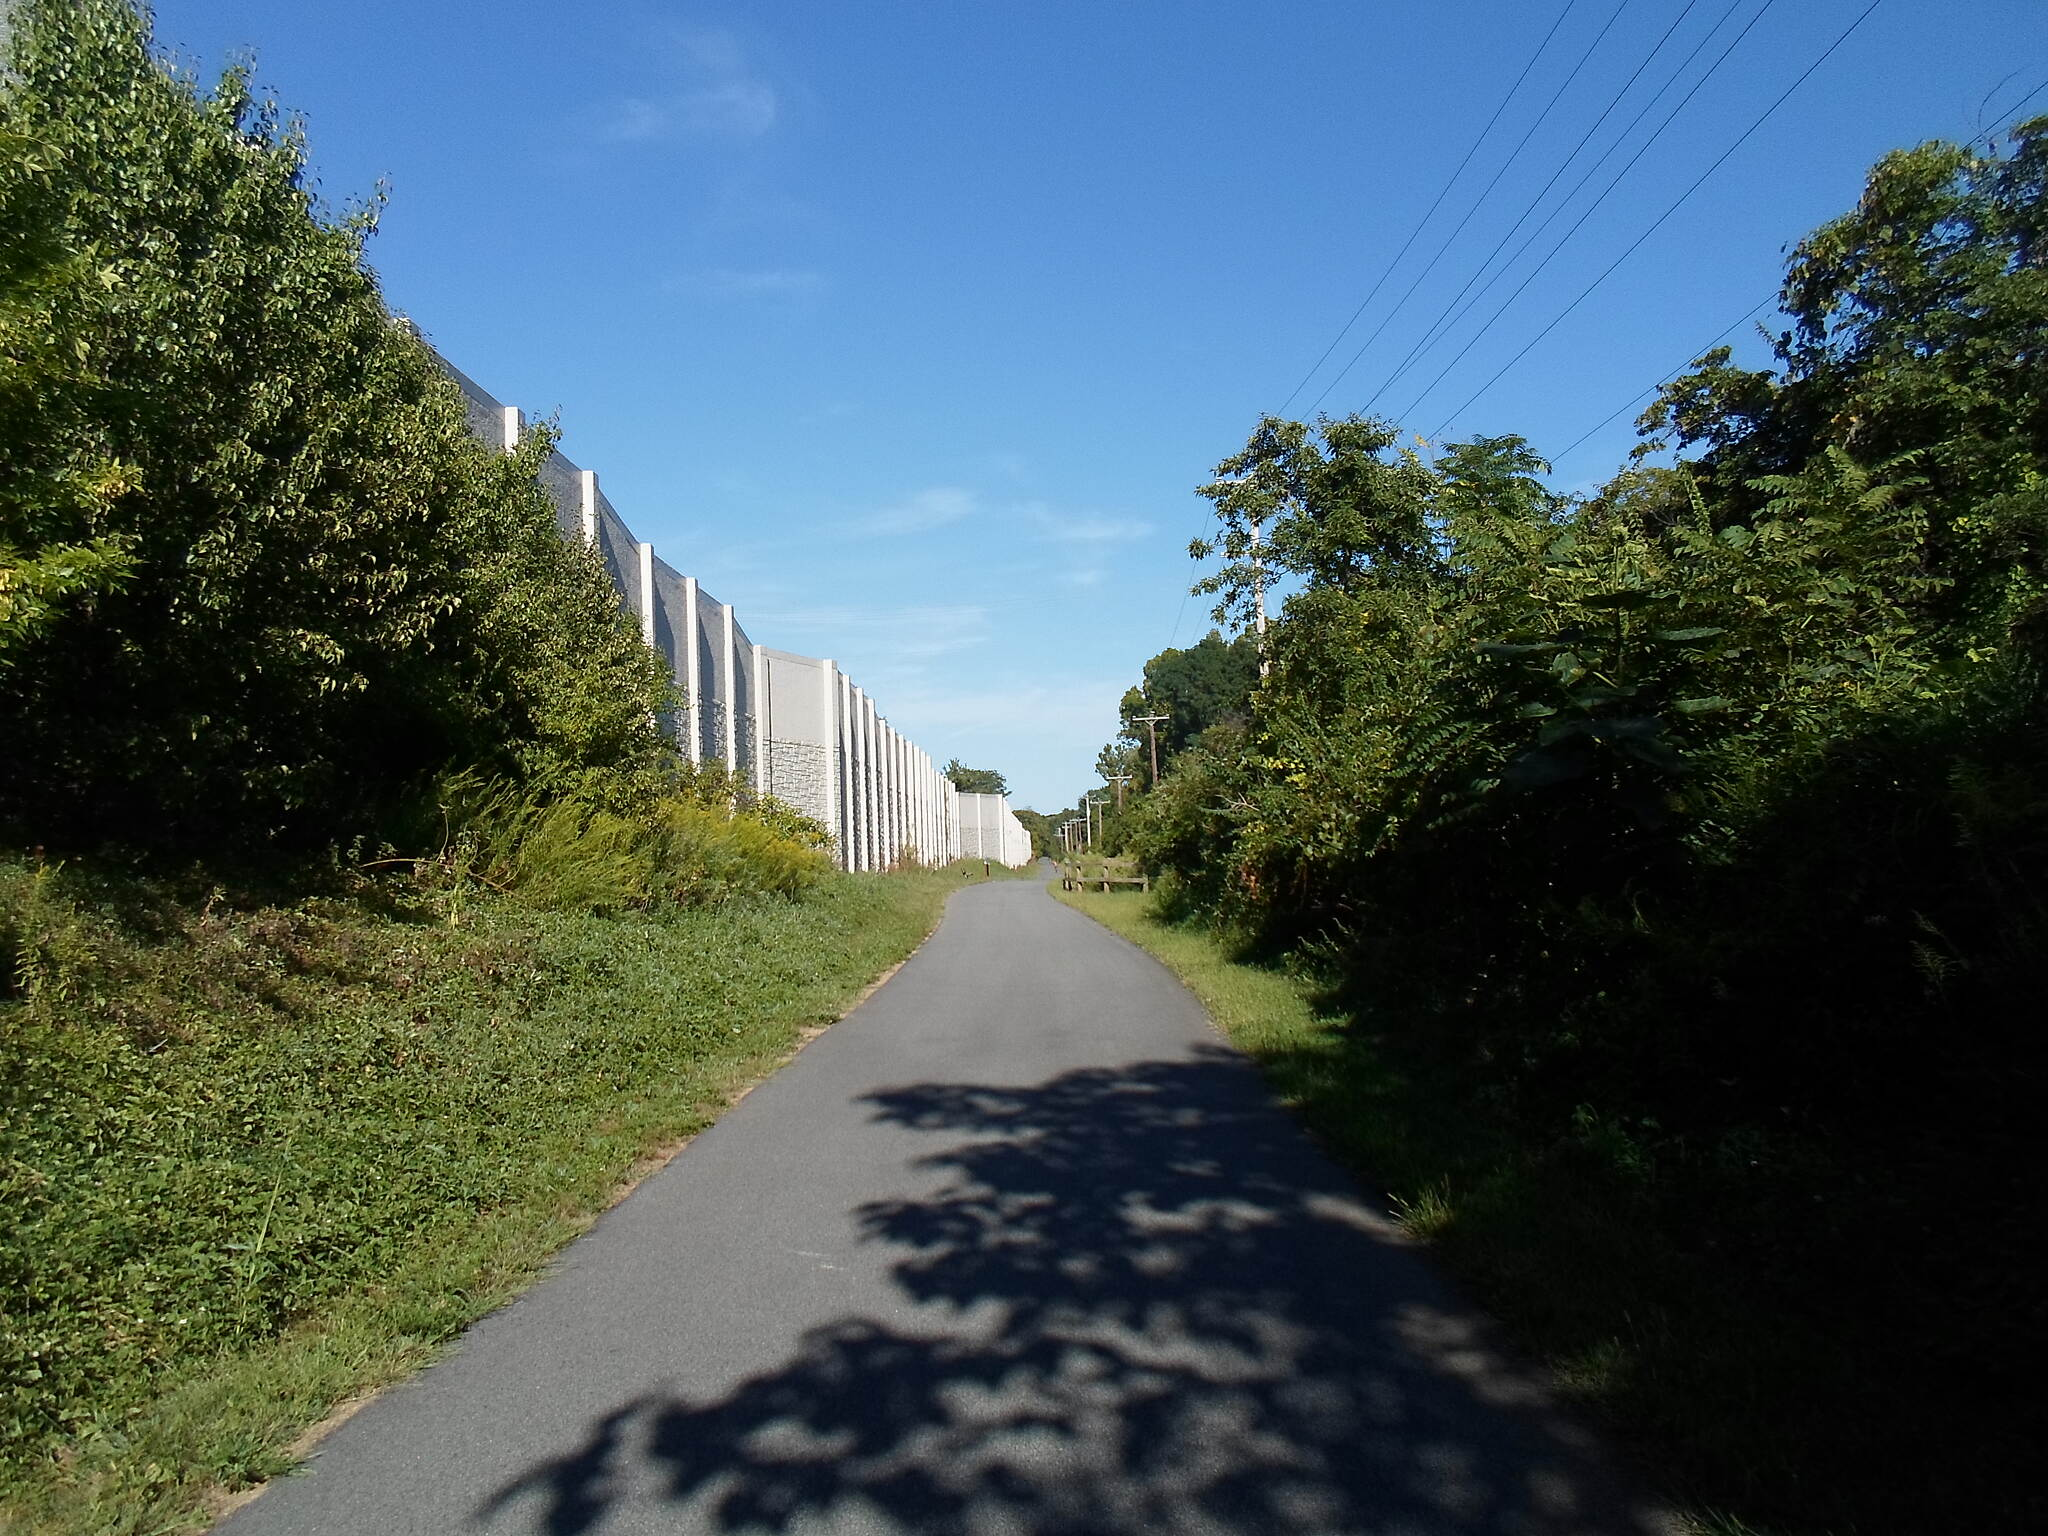 Chester Valley Trail Chester Valley Trail The trail runs south of the sound walls between Route 252 and Valley Forge Road. Taken Sept. 2015.